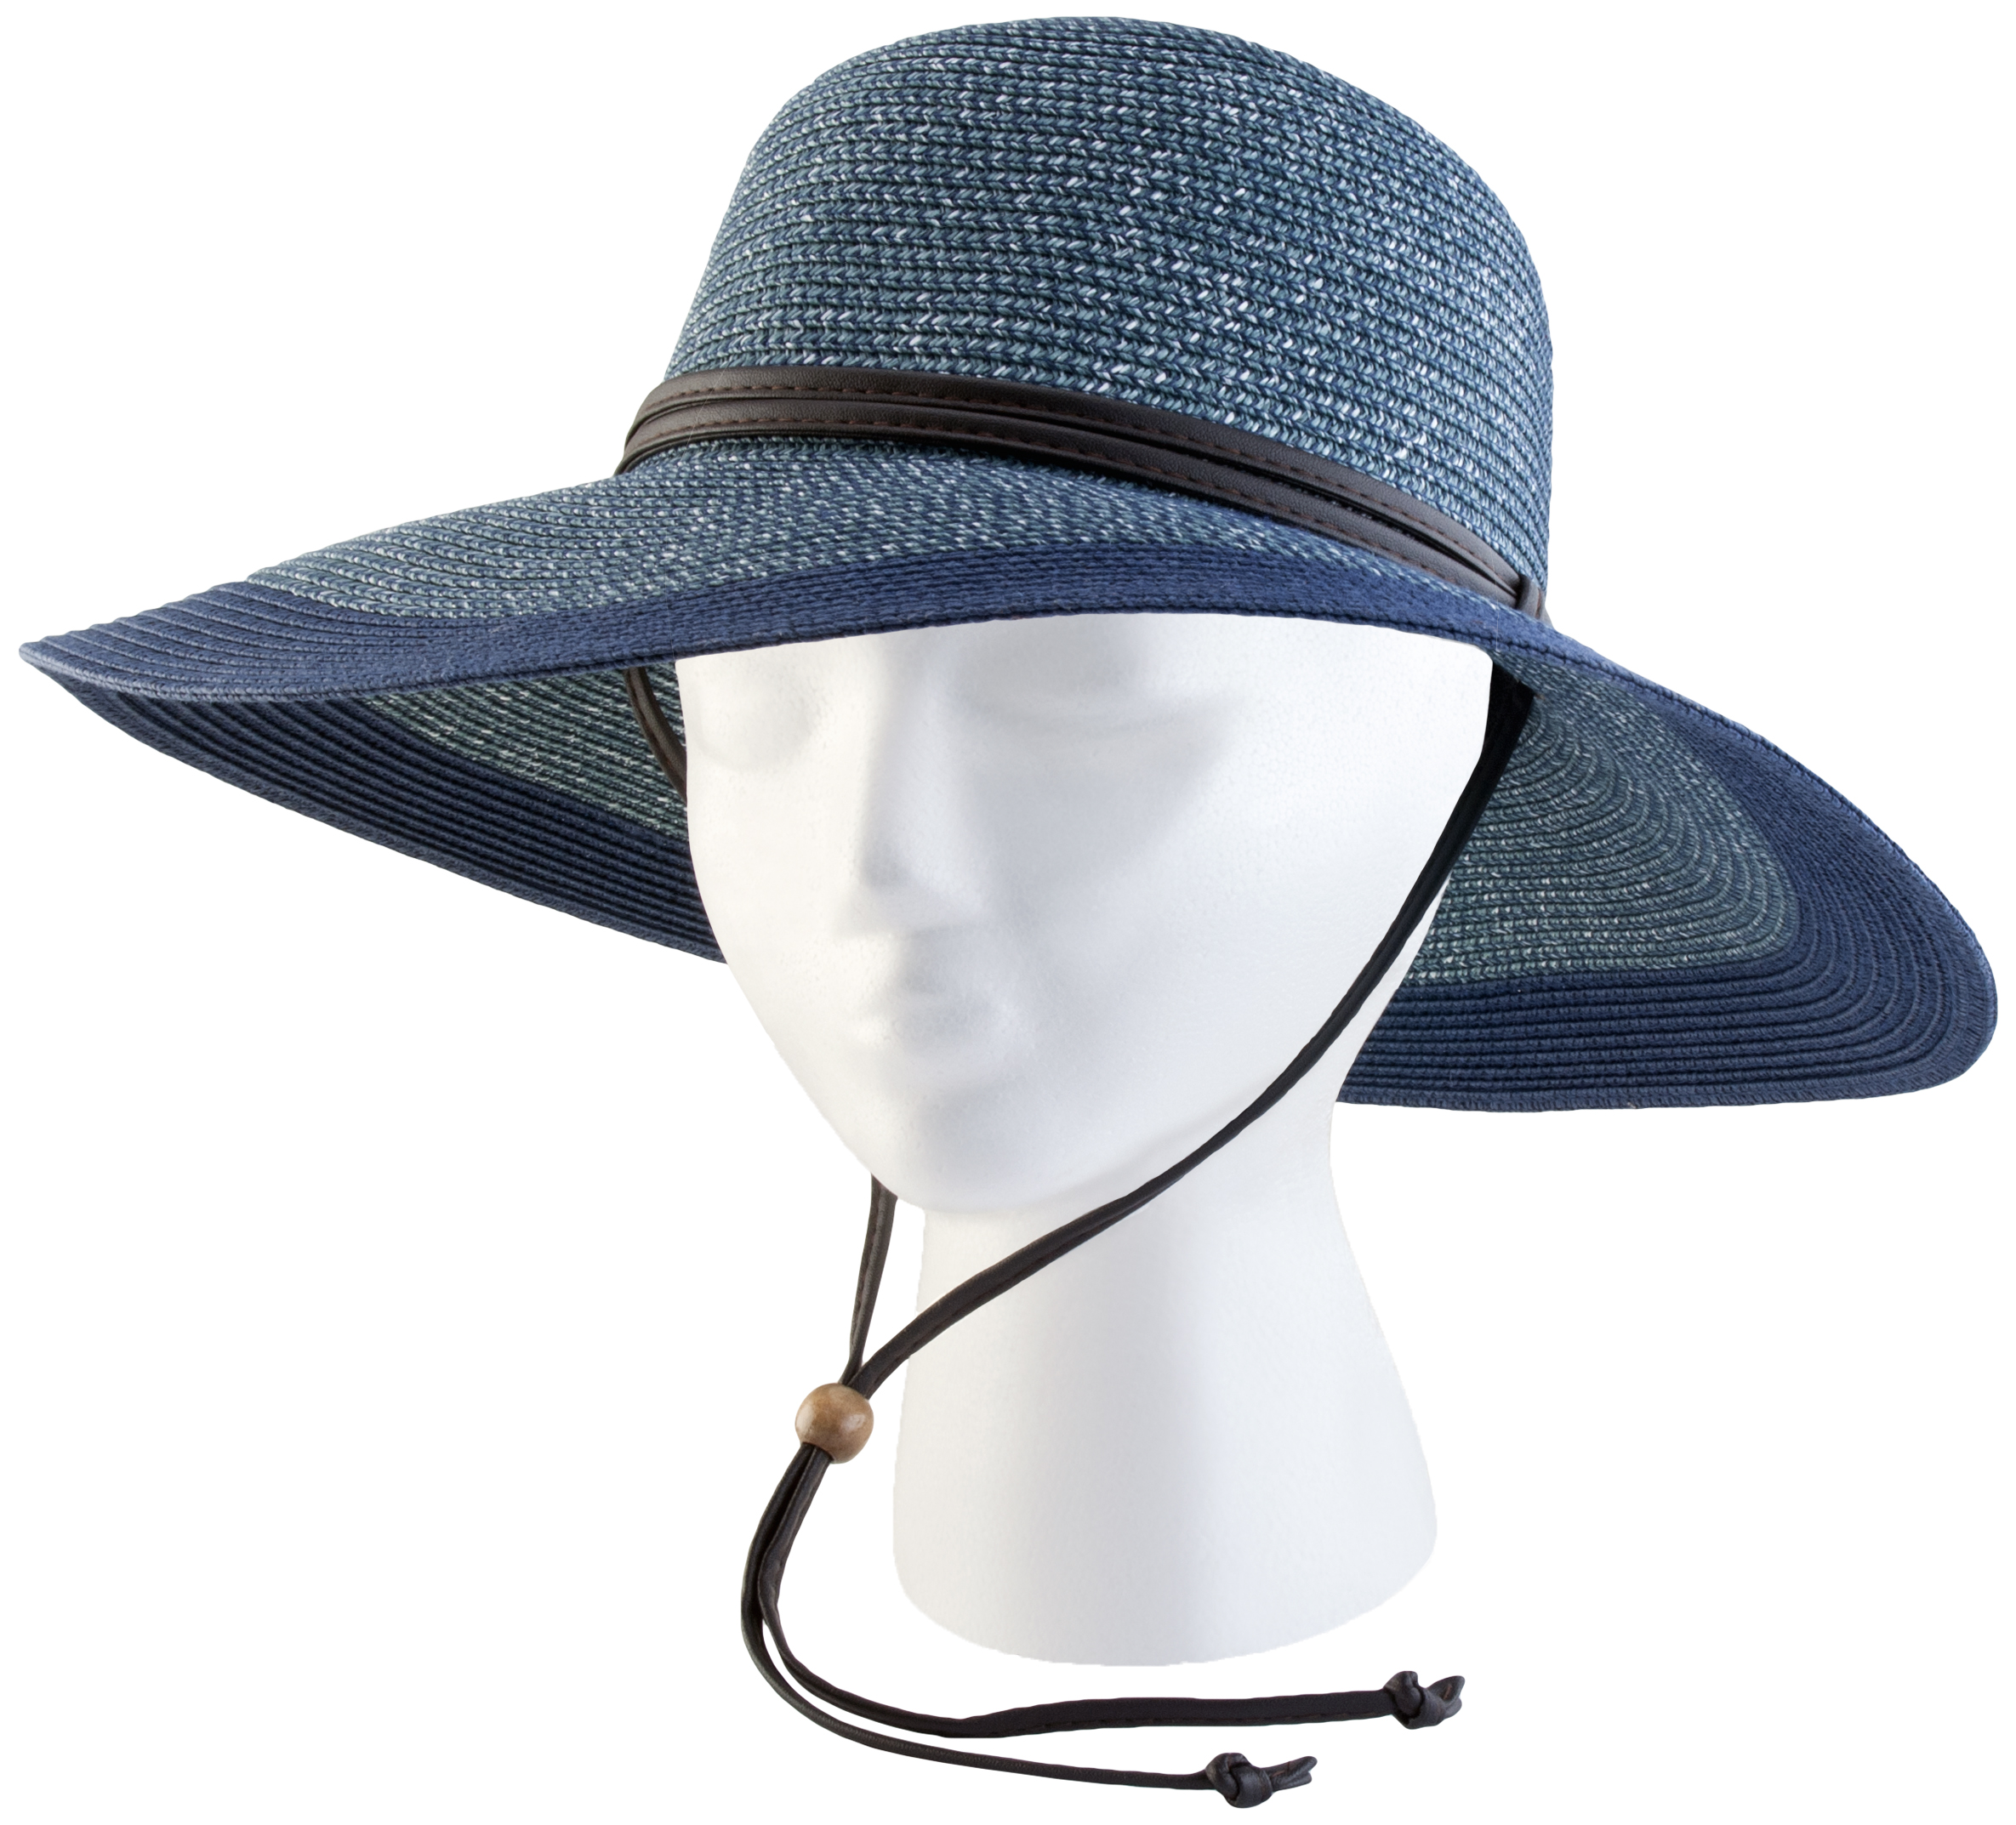 442GB Medium Women's Grey and Blue Wide Brim Hat